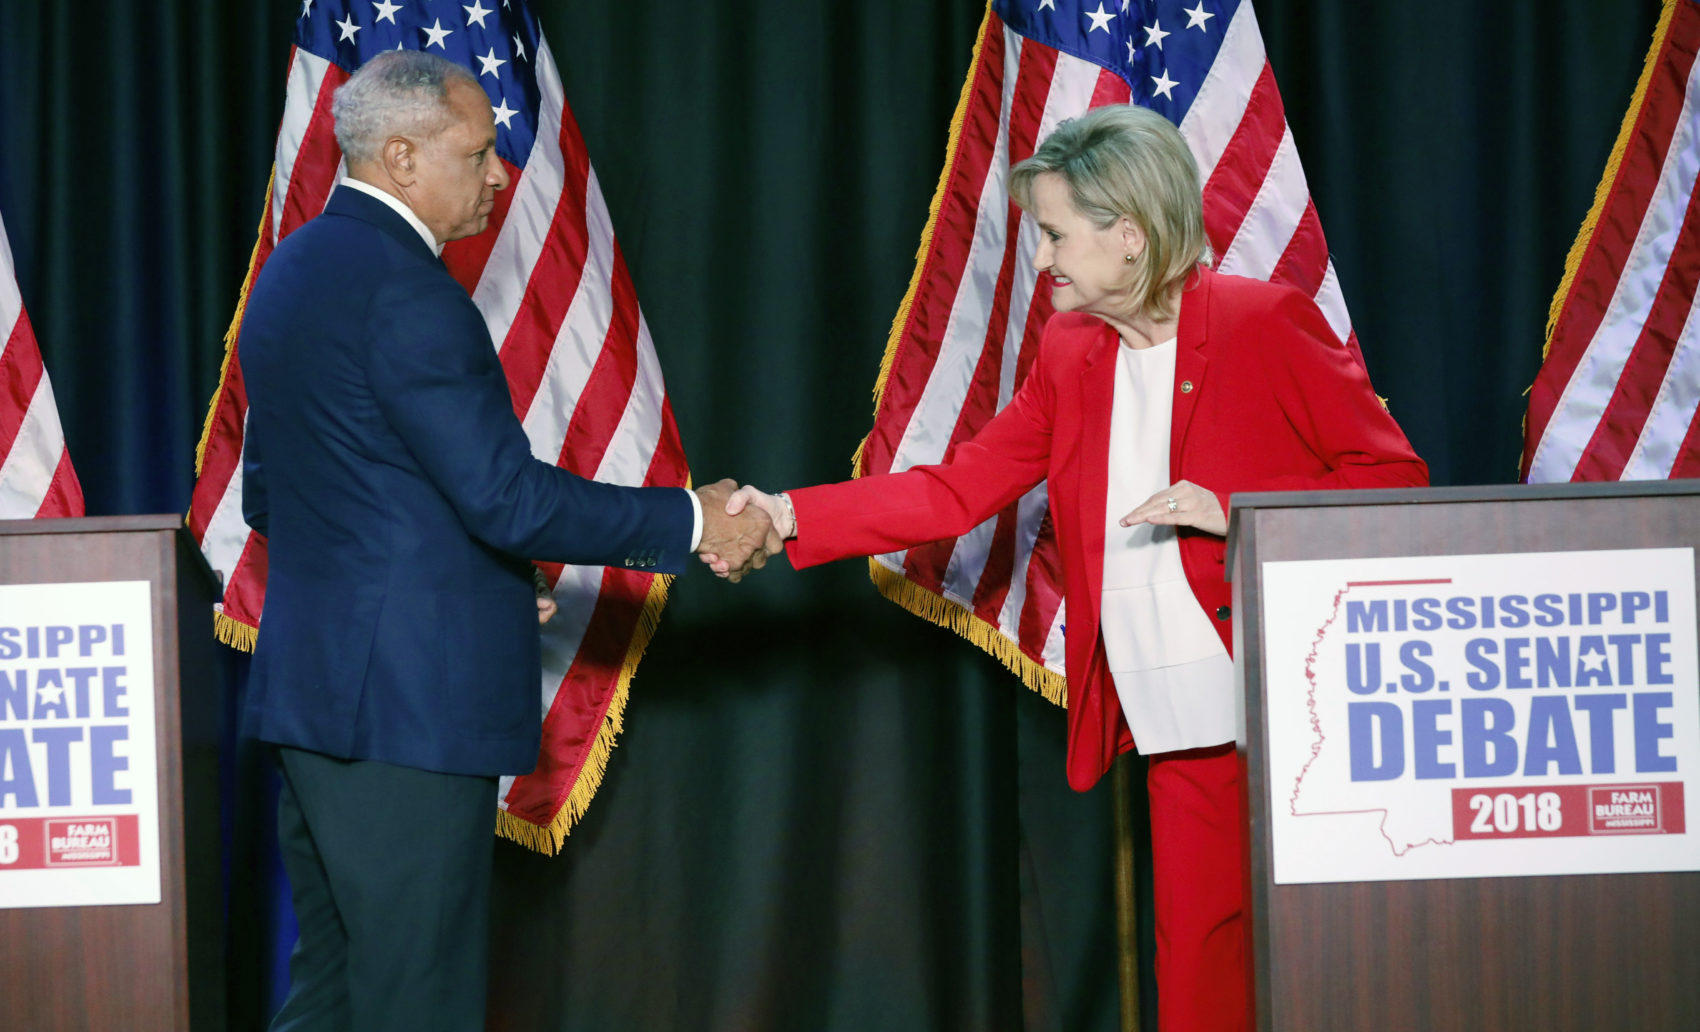 Donald Trump throws his weight behind race-row senator Cindy Hyde-Smith